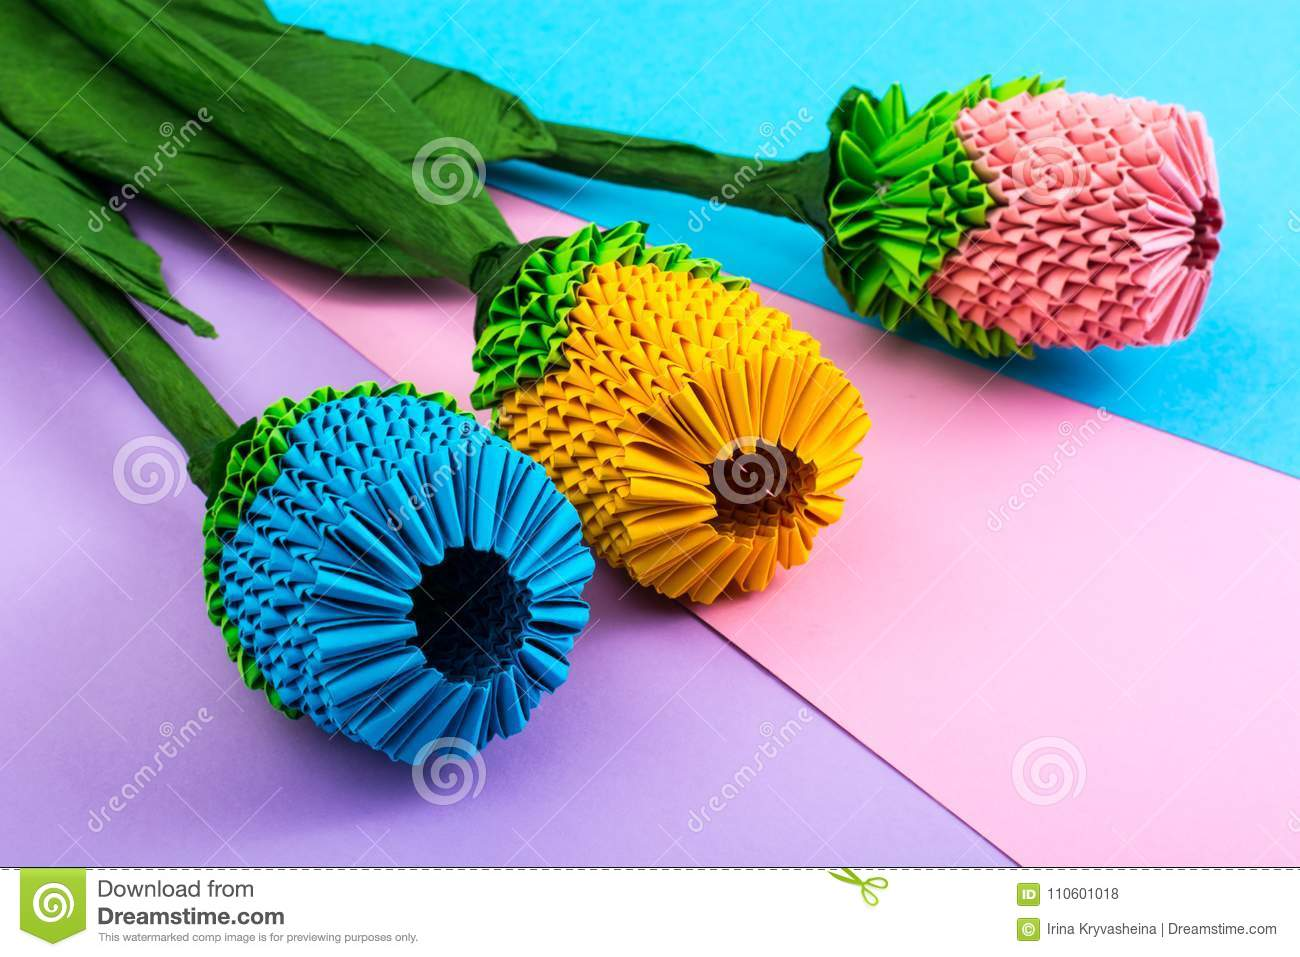 Multicolored paper origami flowers on pastel background stock photo download multicolored paper origami flowers on pastel background stock photo image of origami handmade mightylinksfo